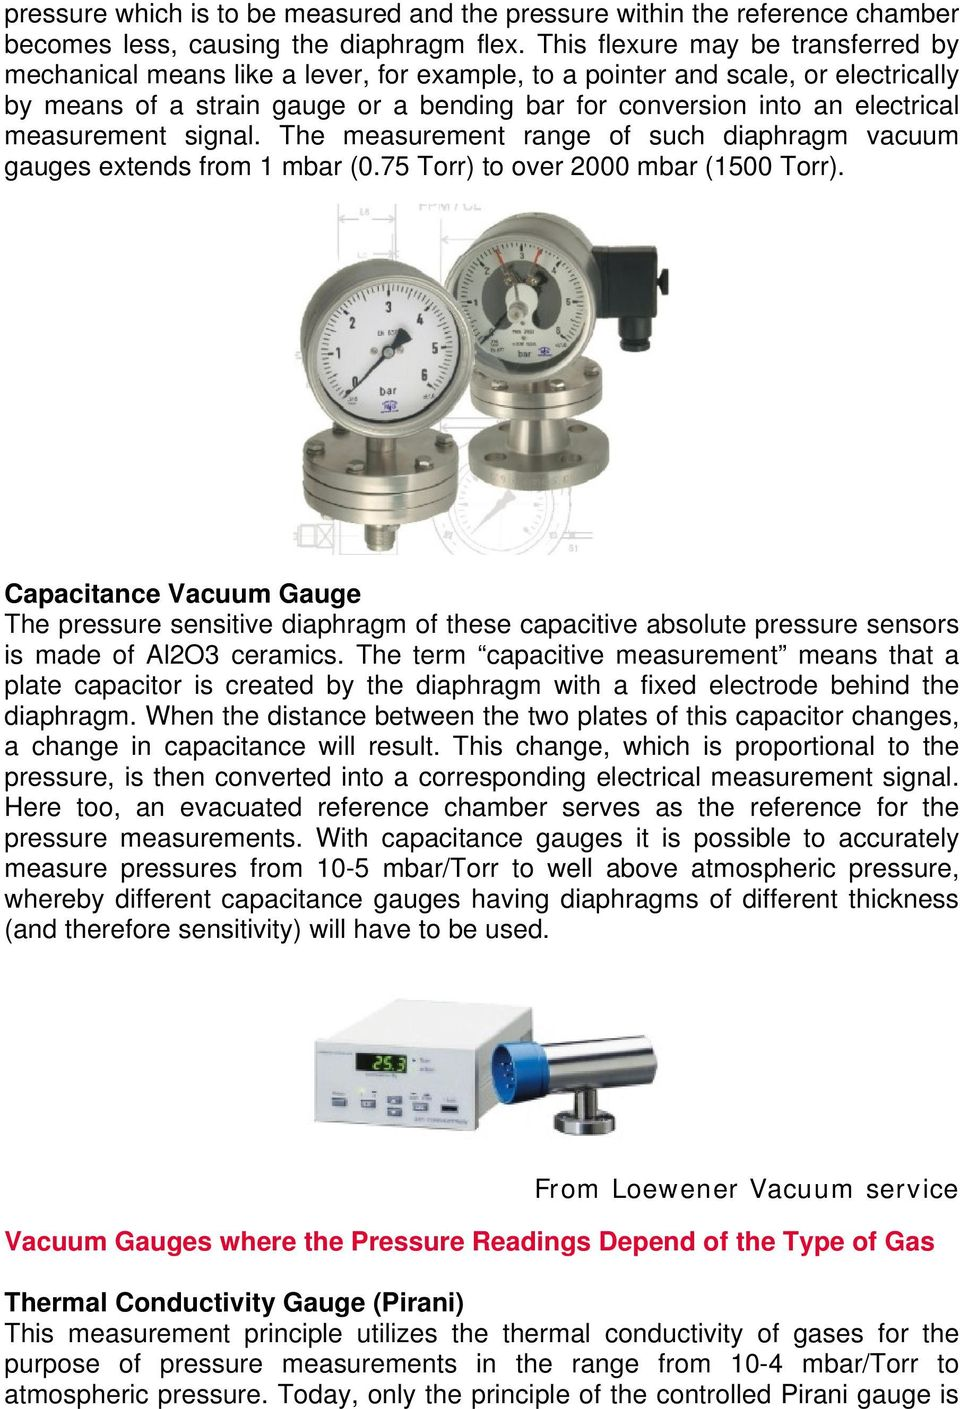 measurement signal. The measurement range of such diaphragm vacuum gauges extends from 1 mbar (0.7 Torr) to over 2000 mbar (100 Torr).